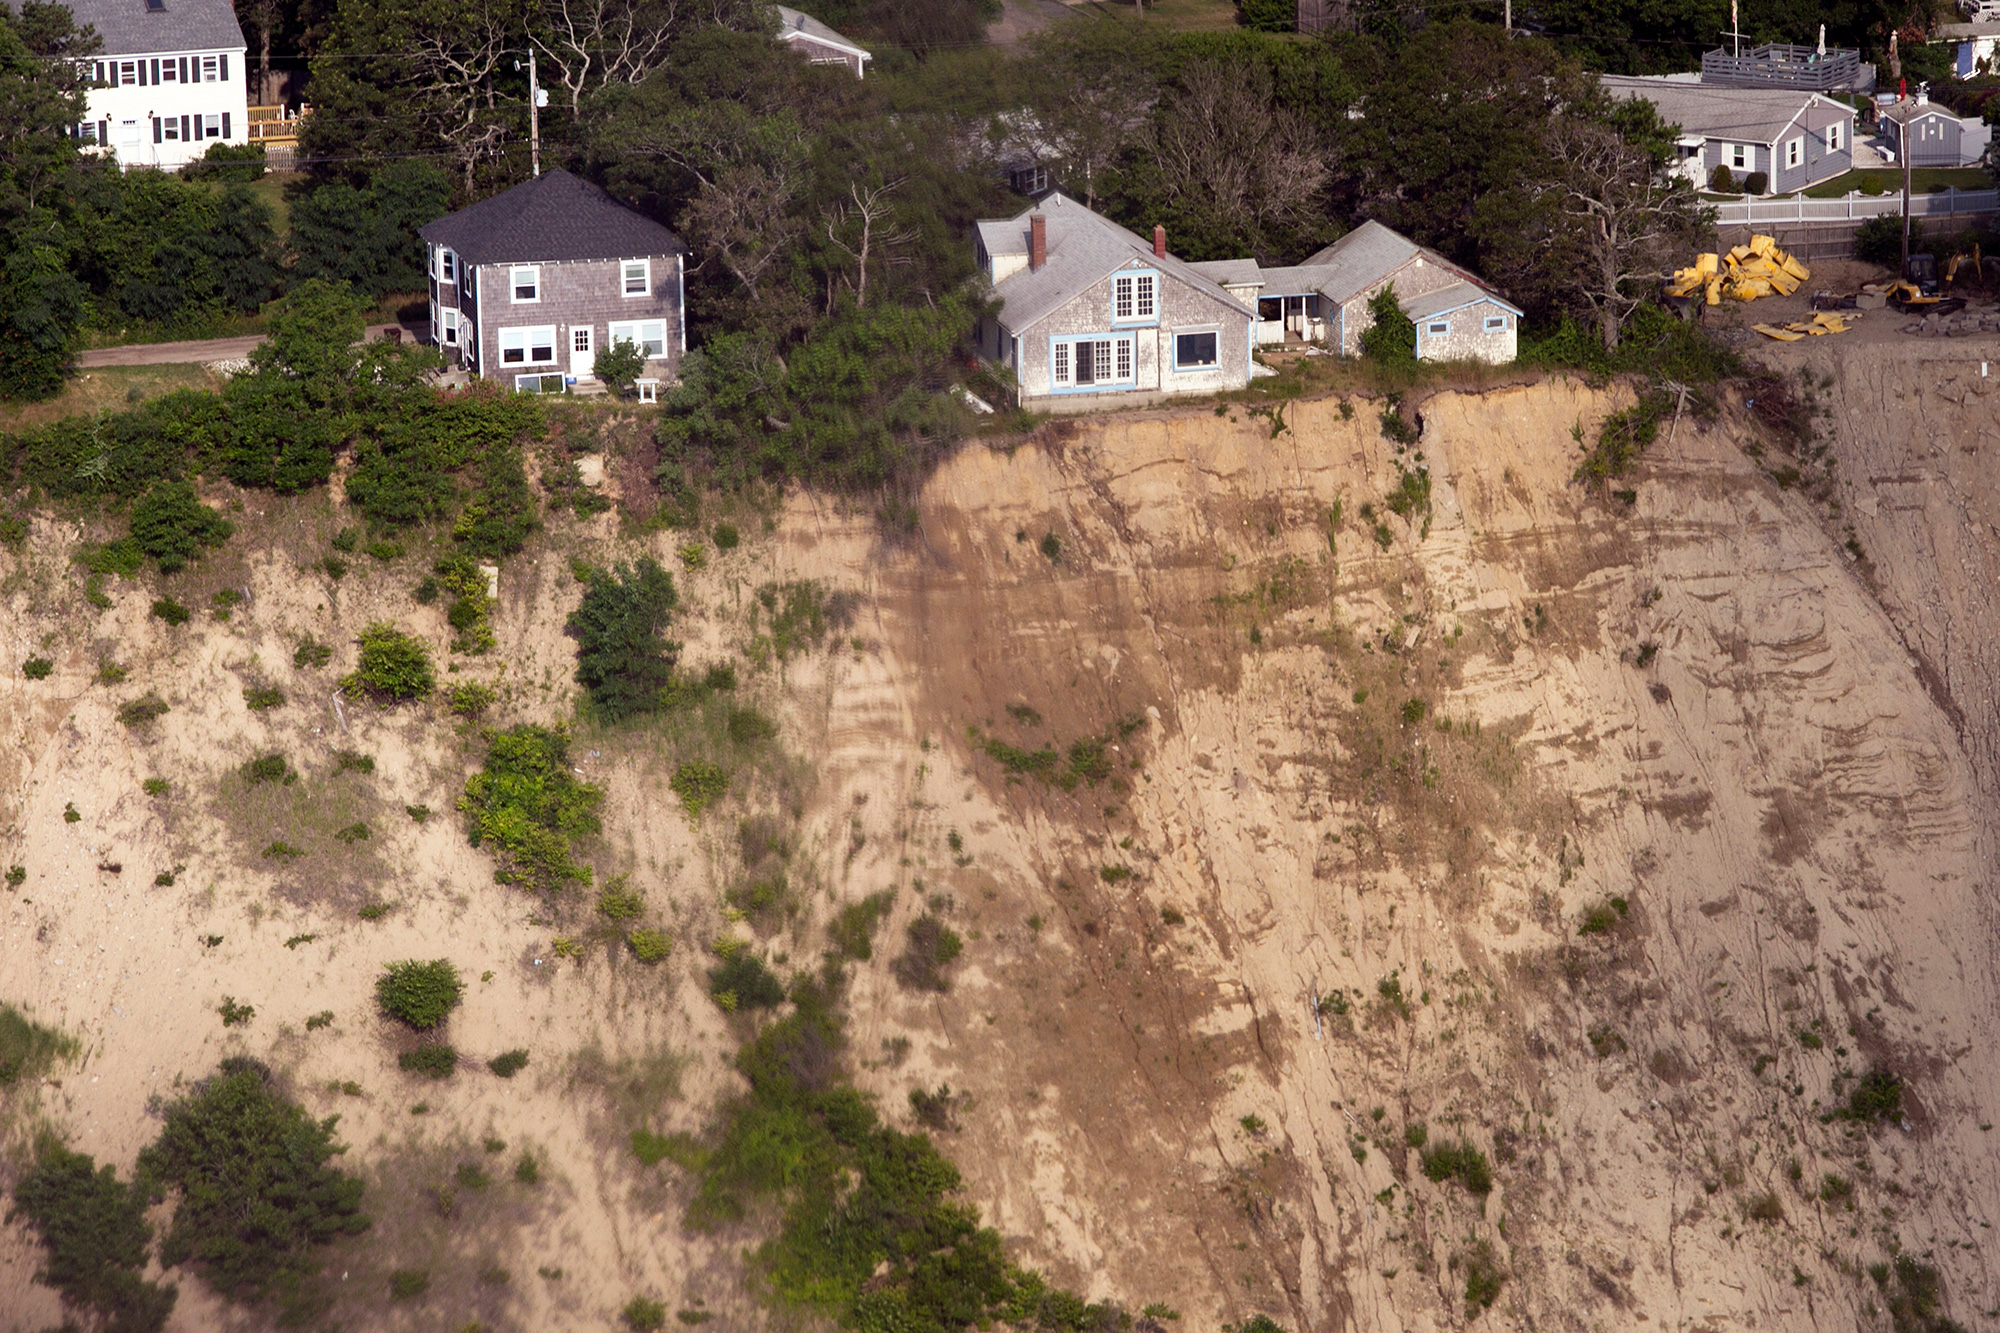 Homes hover dangerously close to the cliff's edge in Plymouth, on the South Shore of Massachusetts. With up to 68 percent of beaches on the East Coast eroding, some residents are moving out. But many are not budging, choosing instead to bolster their homes and adapt to climate change. (Photo by Lauren Owens Lambert/GroundTruth)